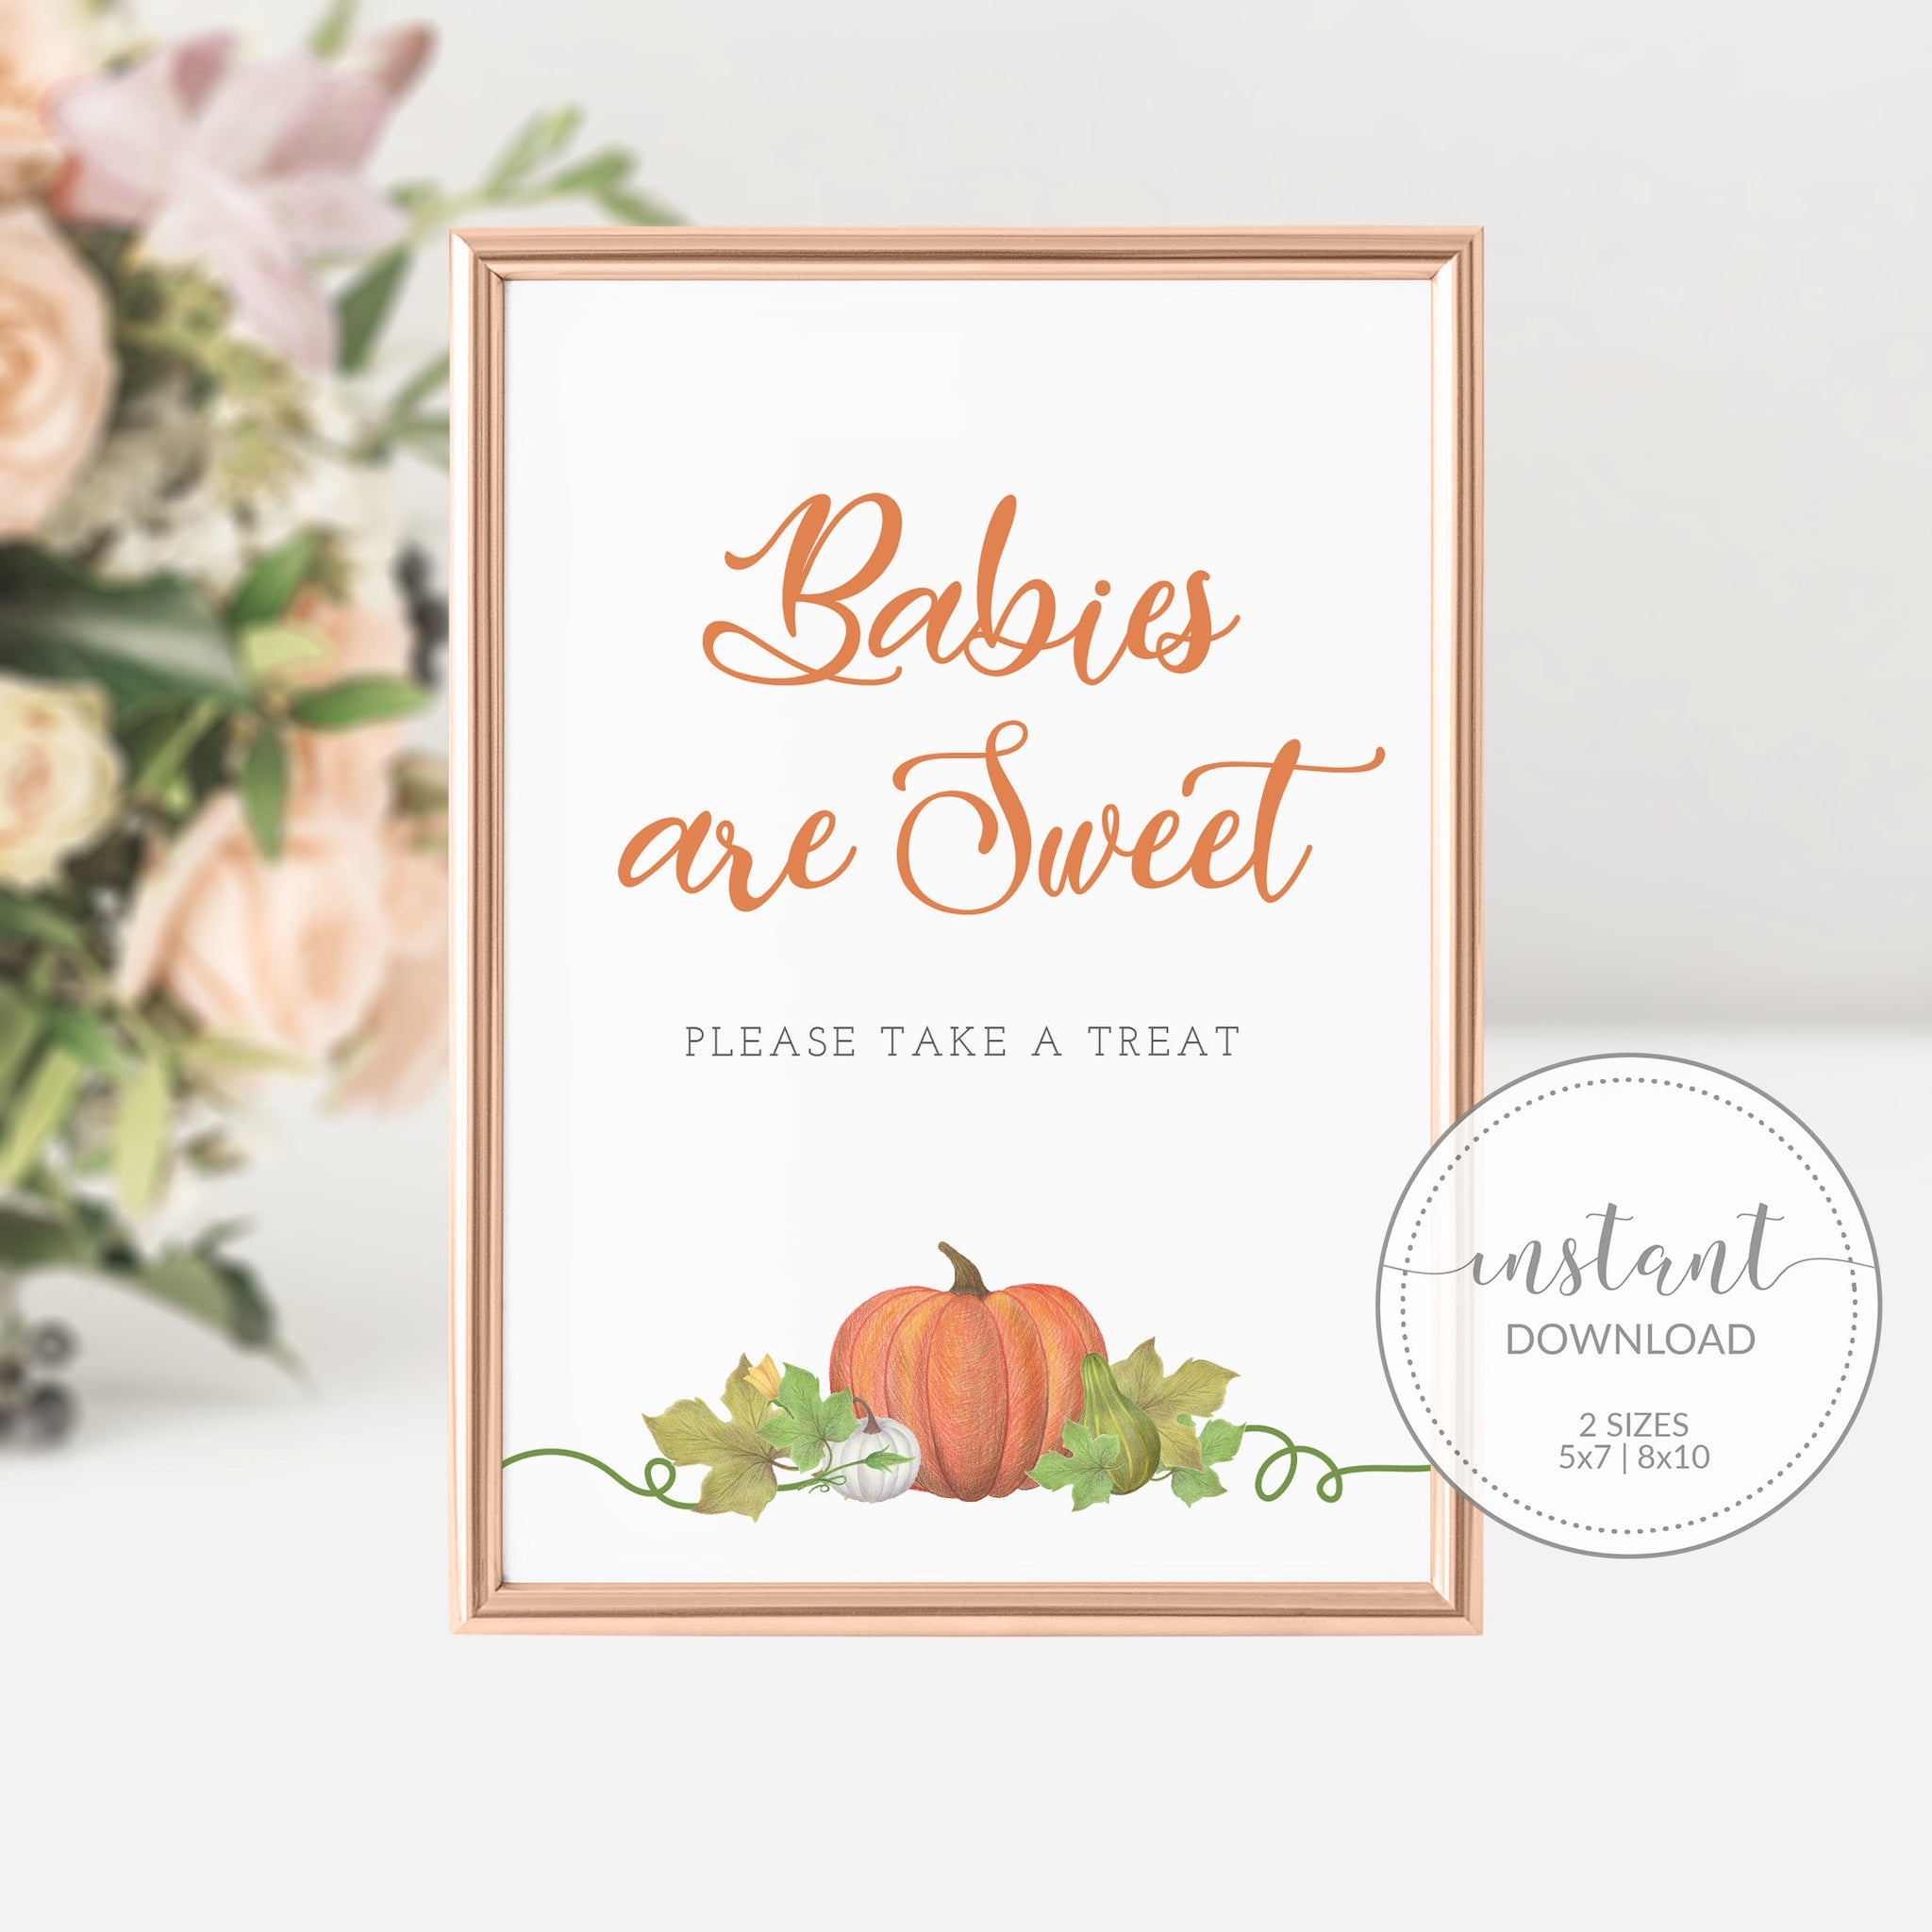 Little Pumpkin Baby Shower Decorations, Babies are Sweet Printable Treat Sign, Pumpkin Baby Shower Sign, INSTANT DOWNLOAD - HP100 - @PlumPolkaDot